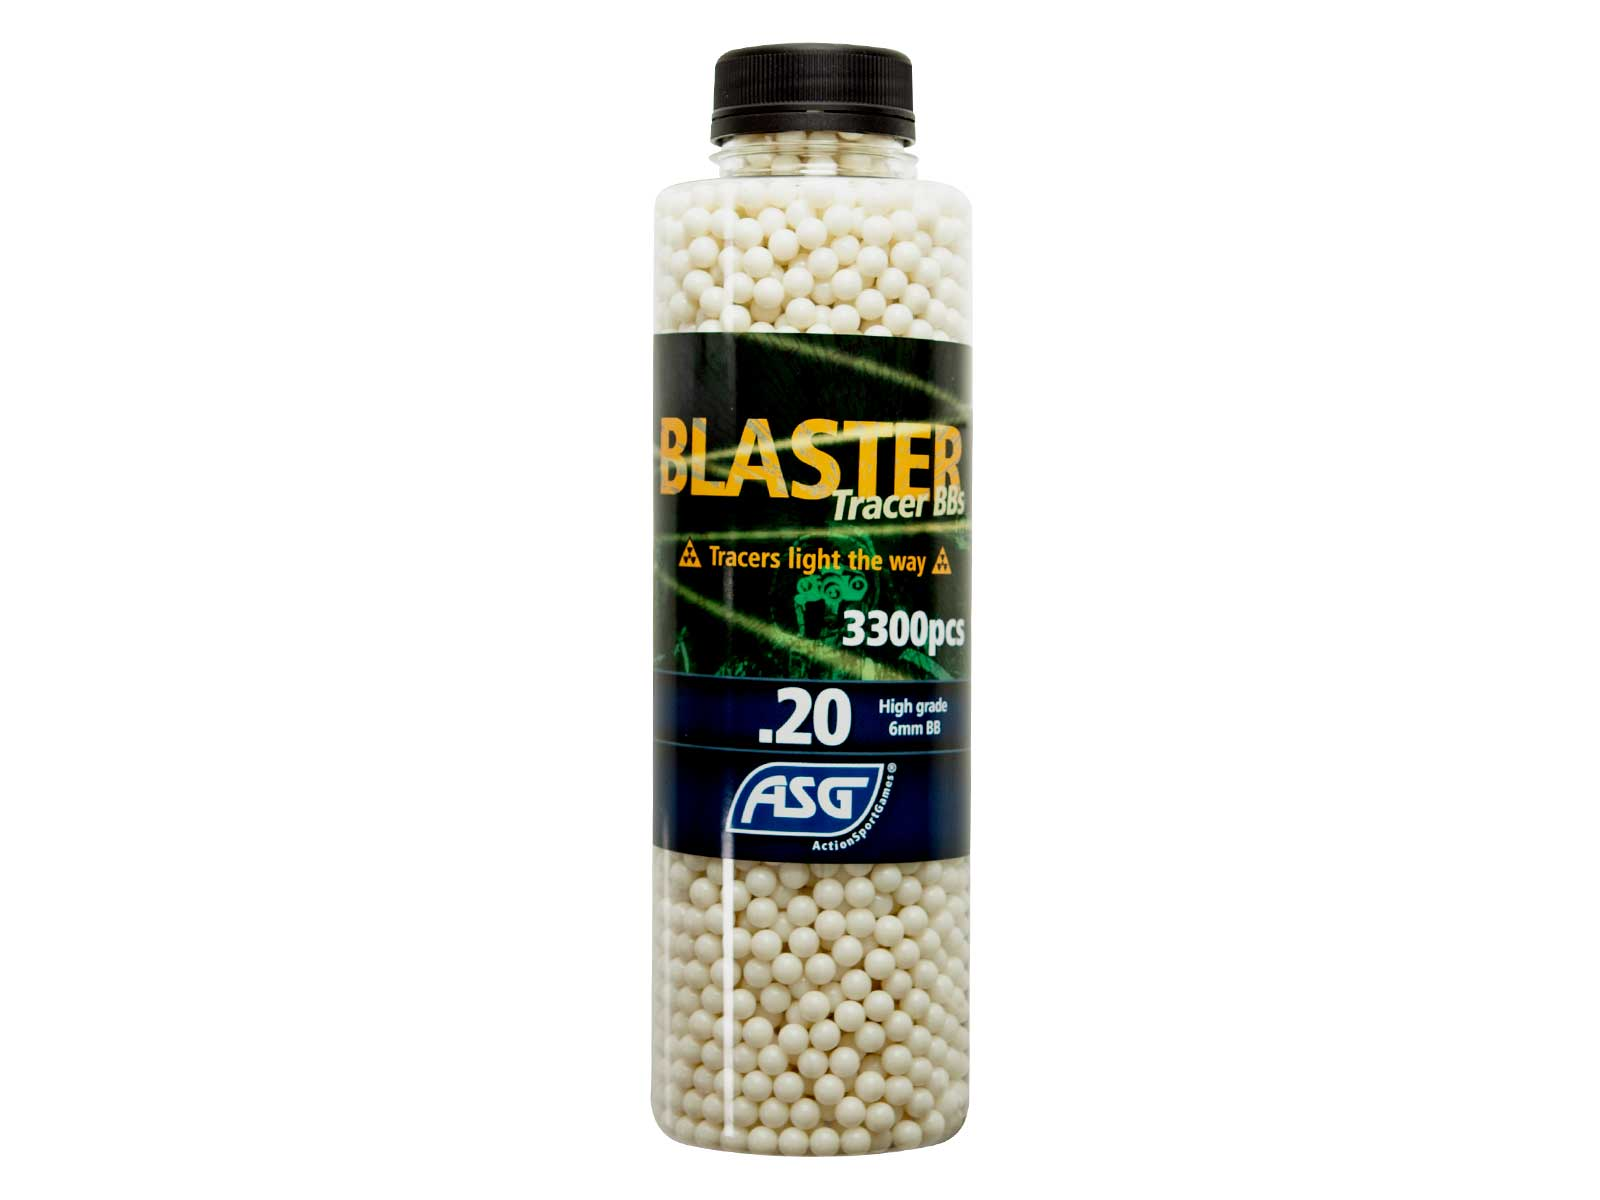 Blaster Tracer 0.20g Airsoft BB in green color -3300 pcs